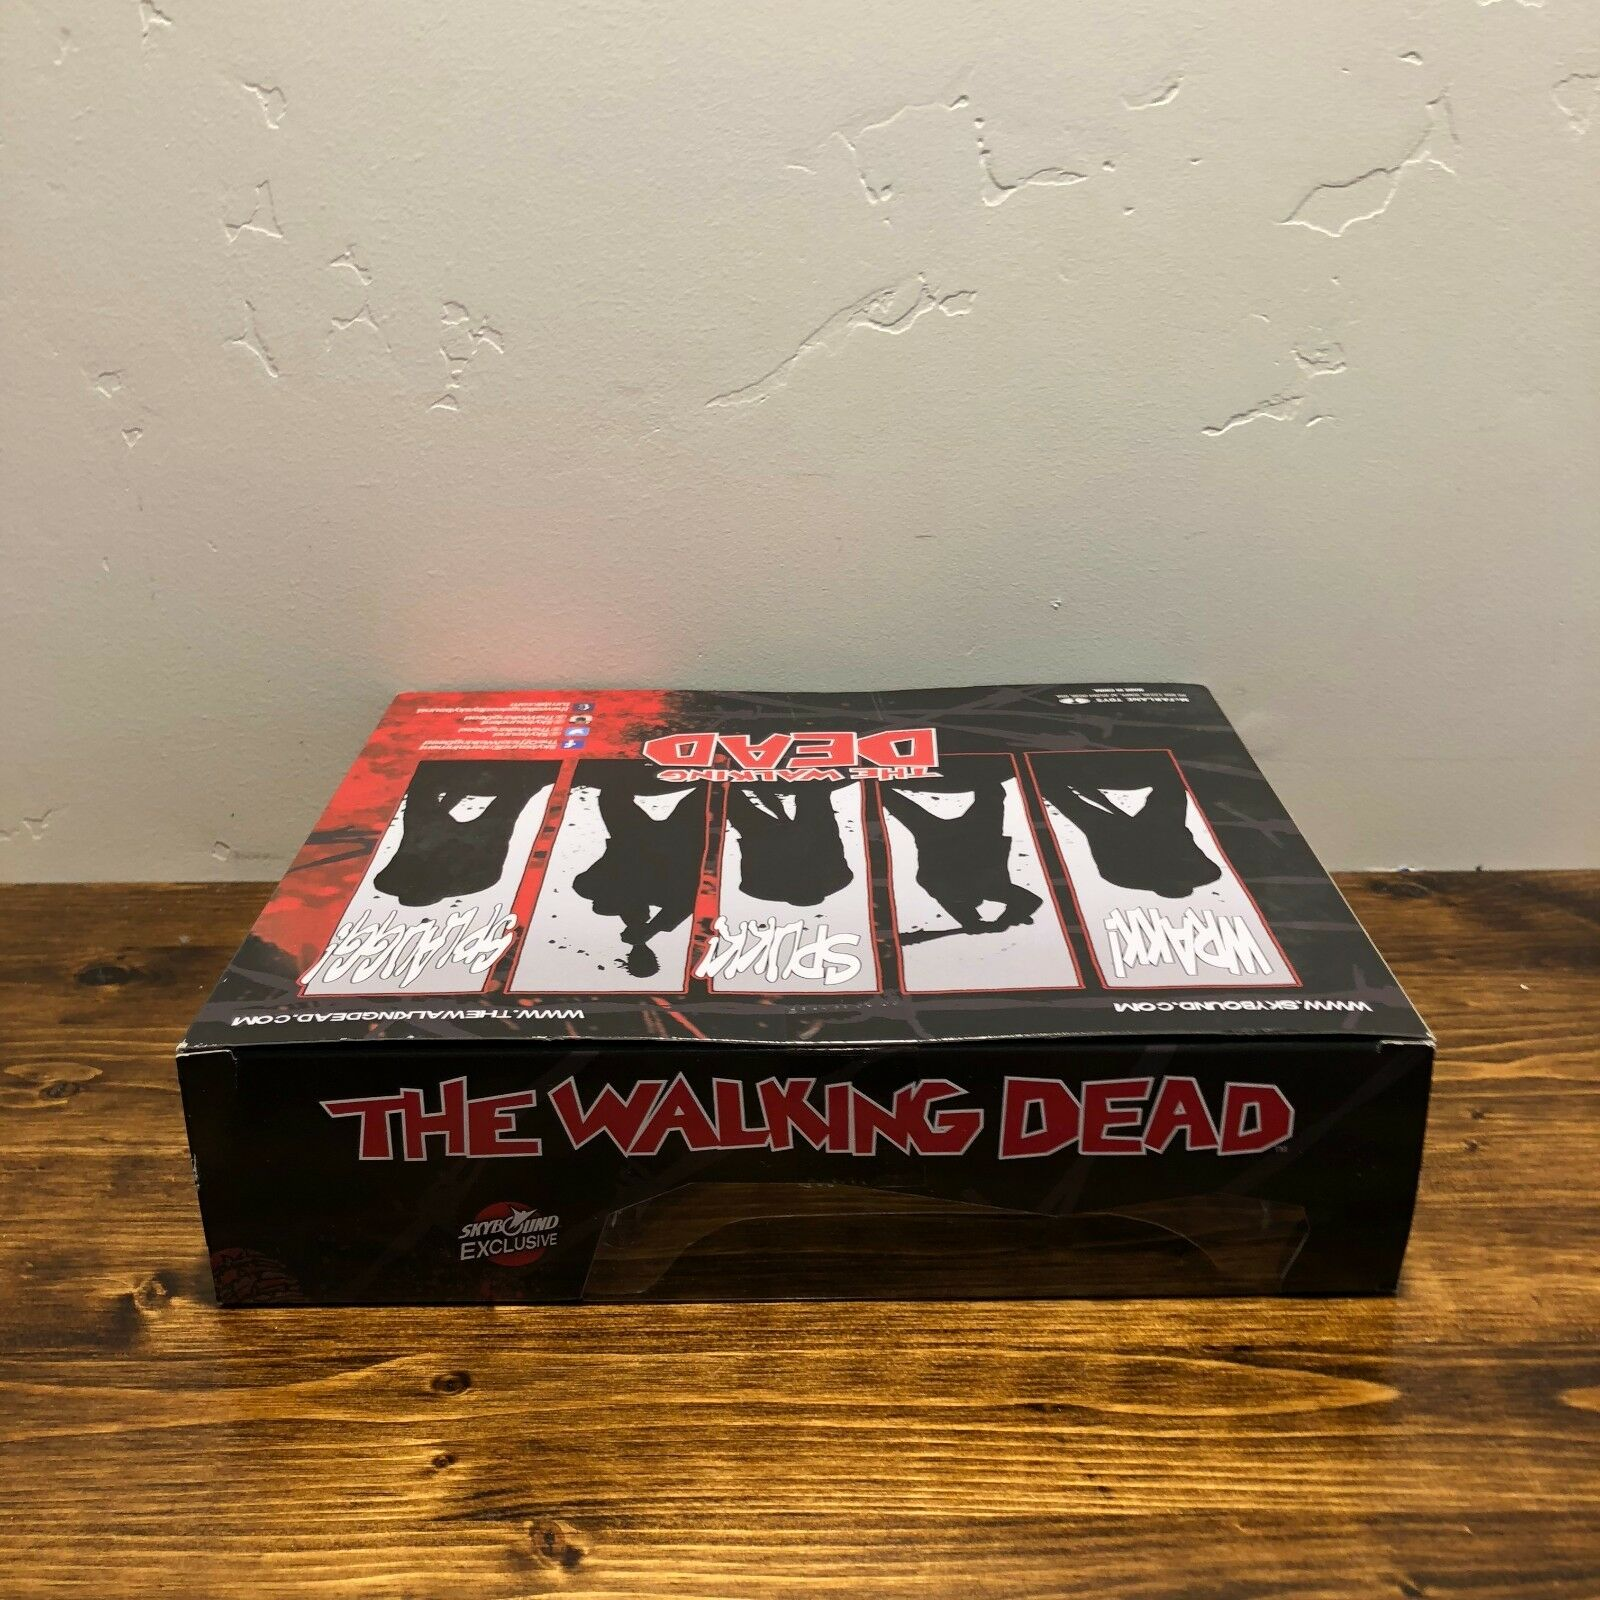 SDCC Skybound Exclusive The Walking Dead Dead Dead Negan and Glenn Bloody Figure Set S O 1f2221